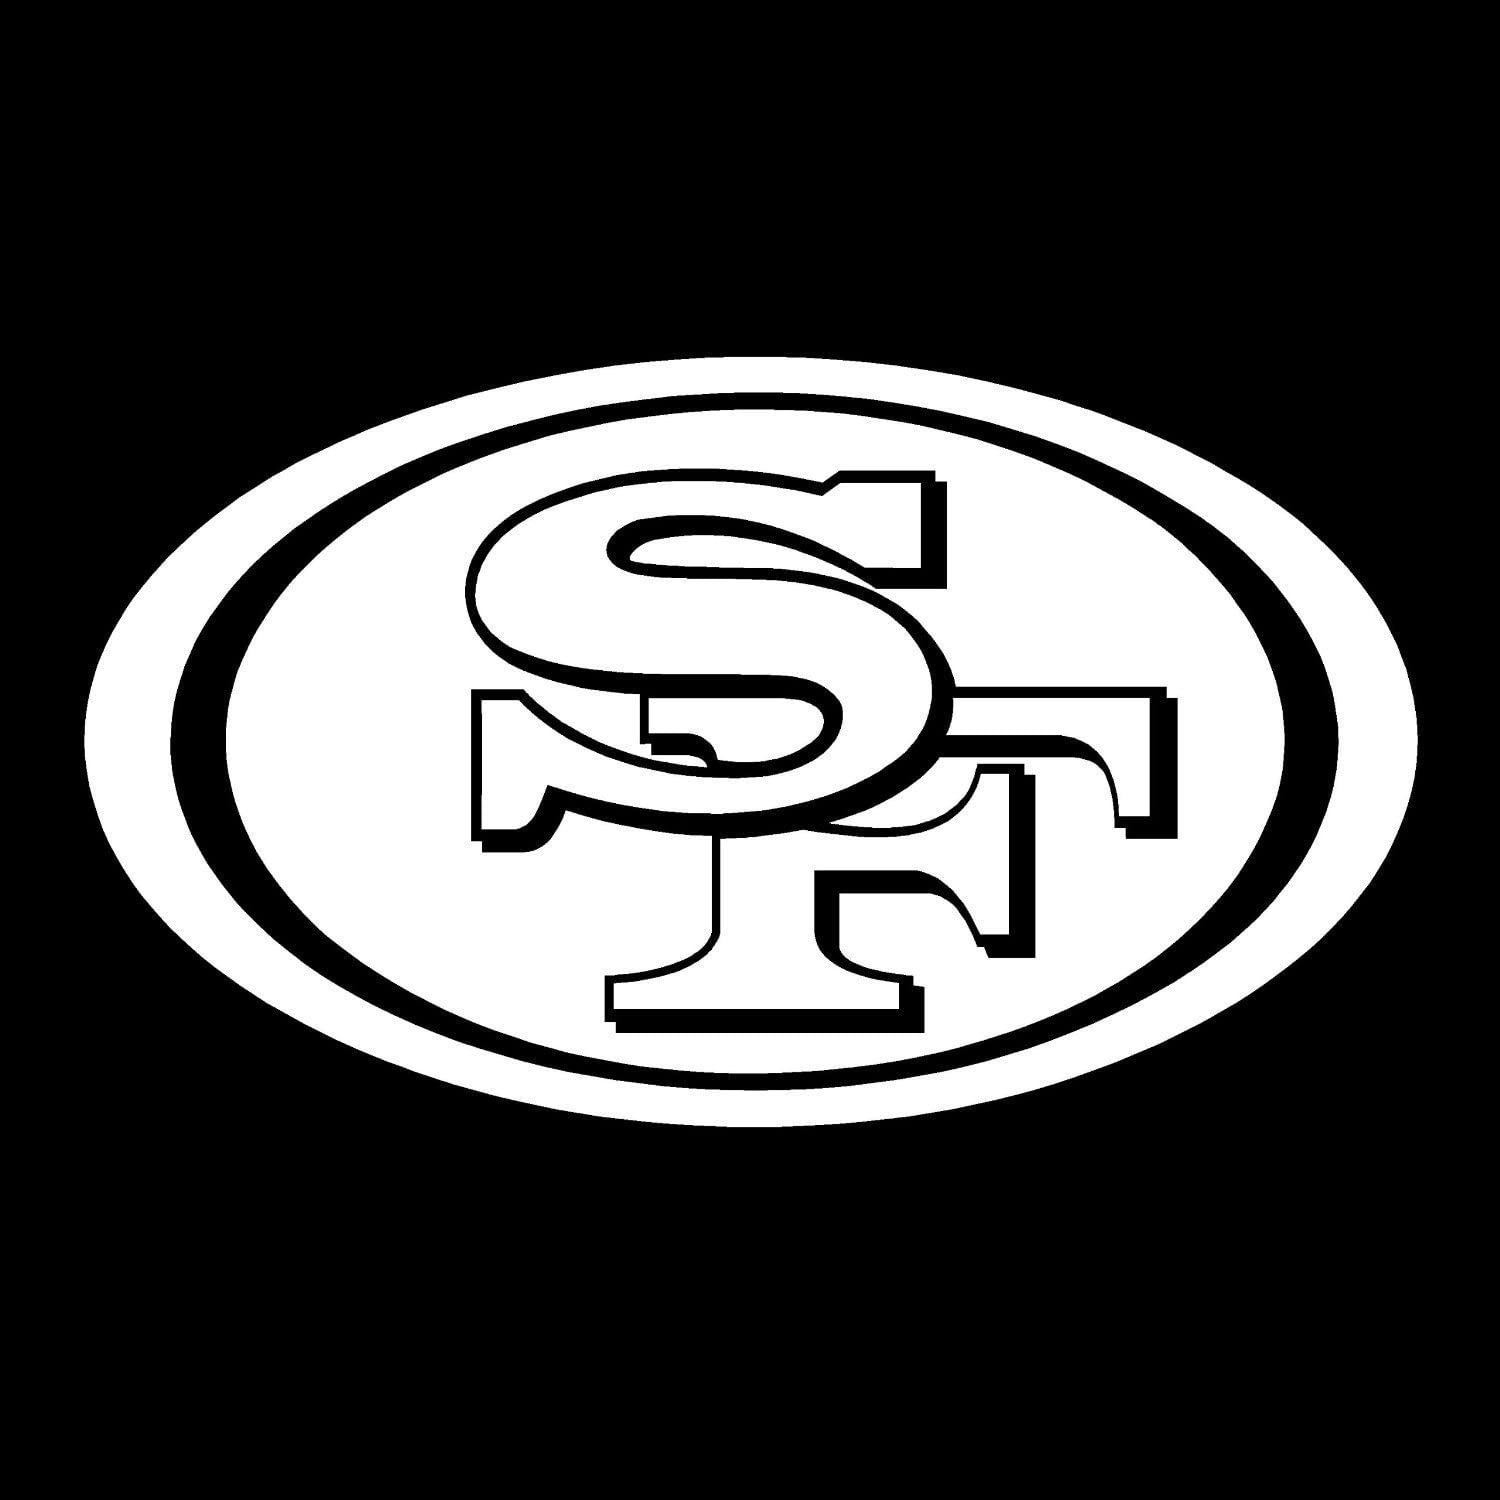 Amazon Com Sf 49ers Logo Vinyl 5 Wide Color White Decal Laptop Tablet Skateboard Car Windows Sticker Exclusively By So Cool Stuff Computers Accessories